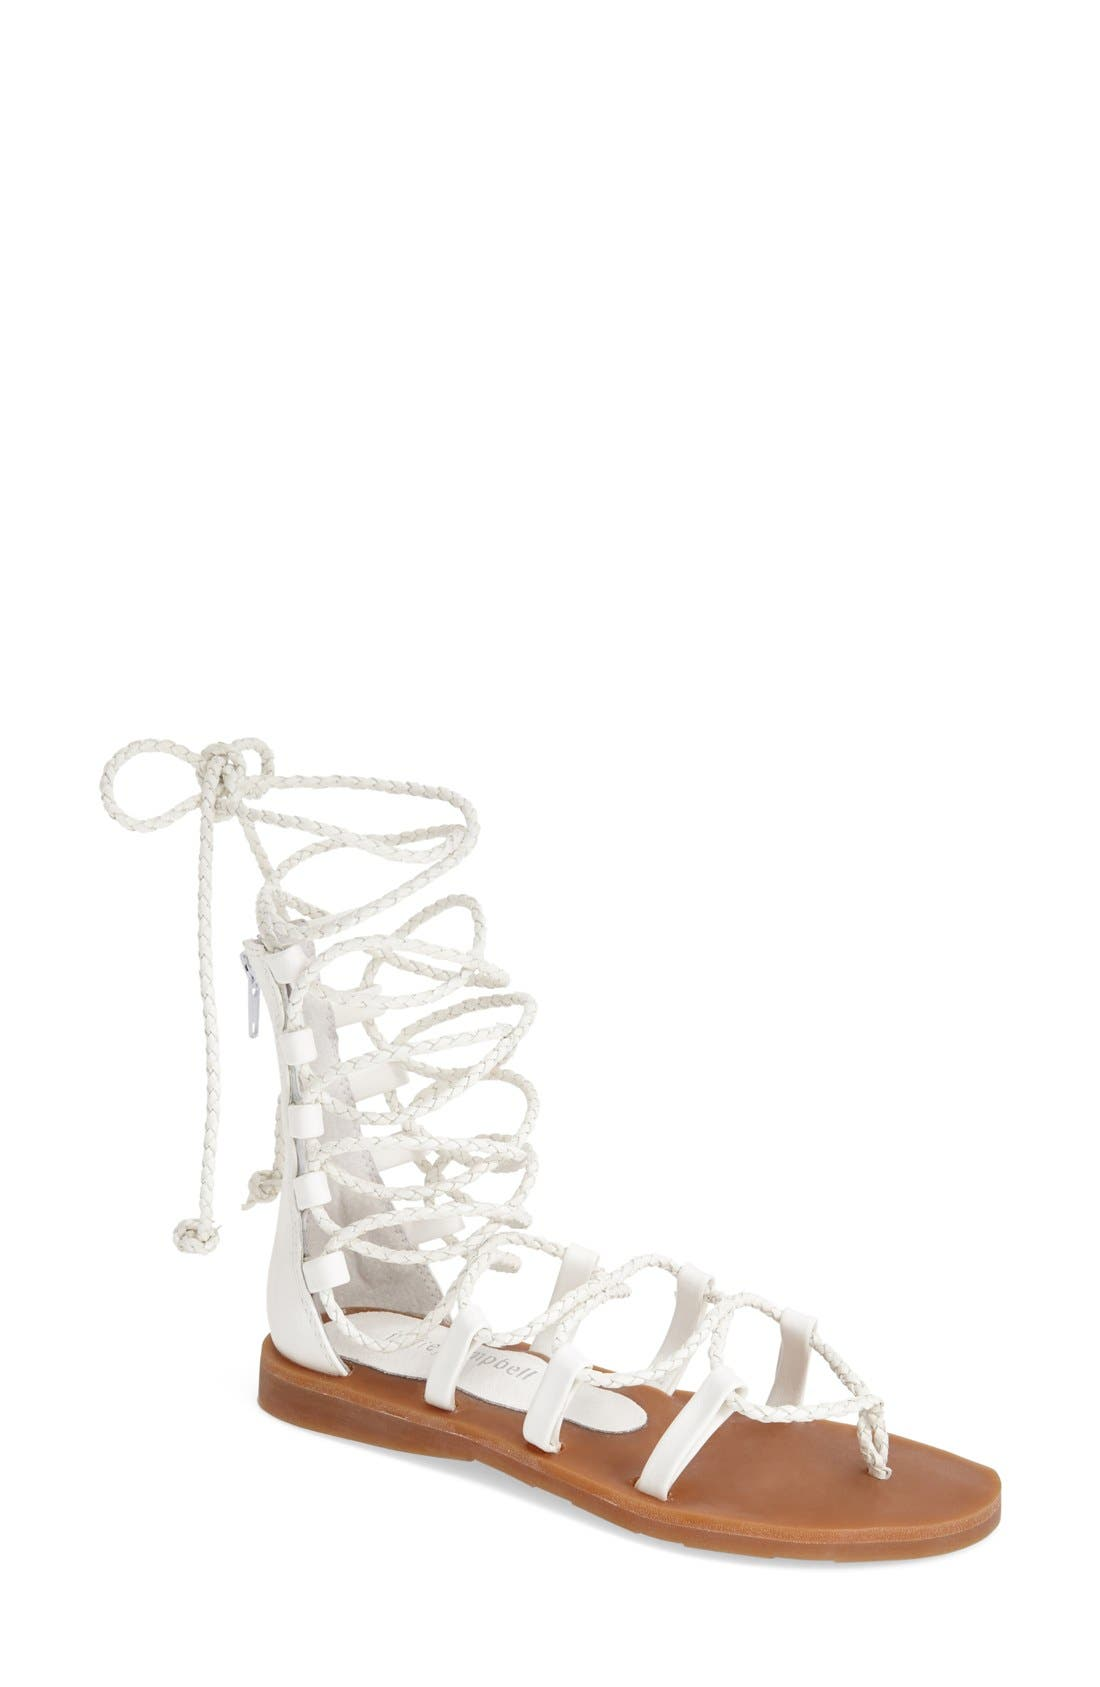 'Hola' Lace-Up Gladiator Sandal,                             Main thumbnail 1, color,                             White